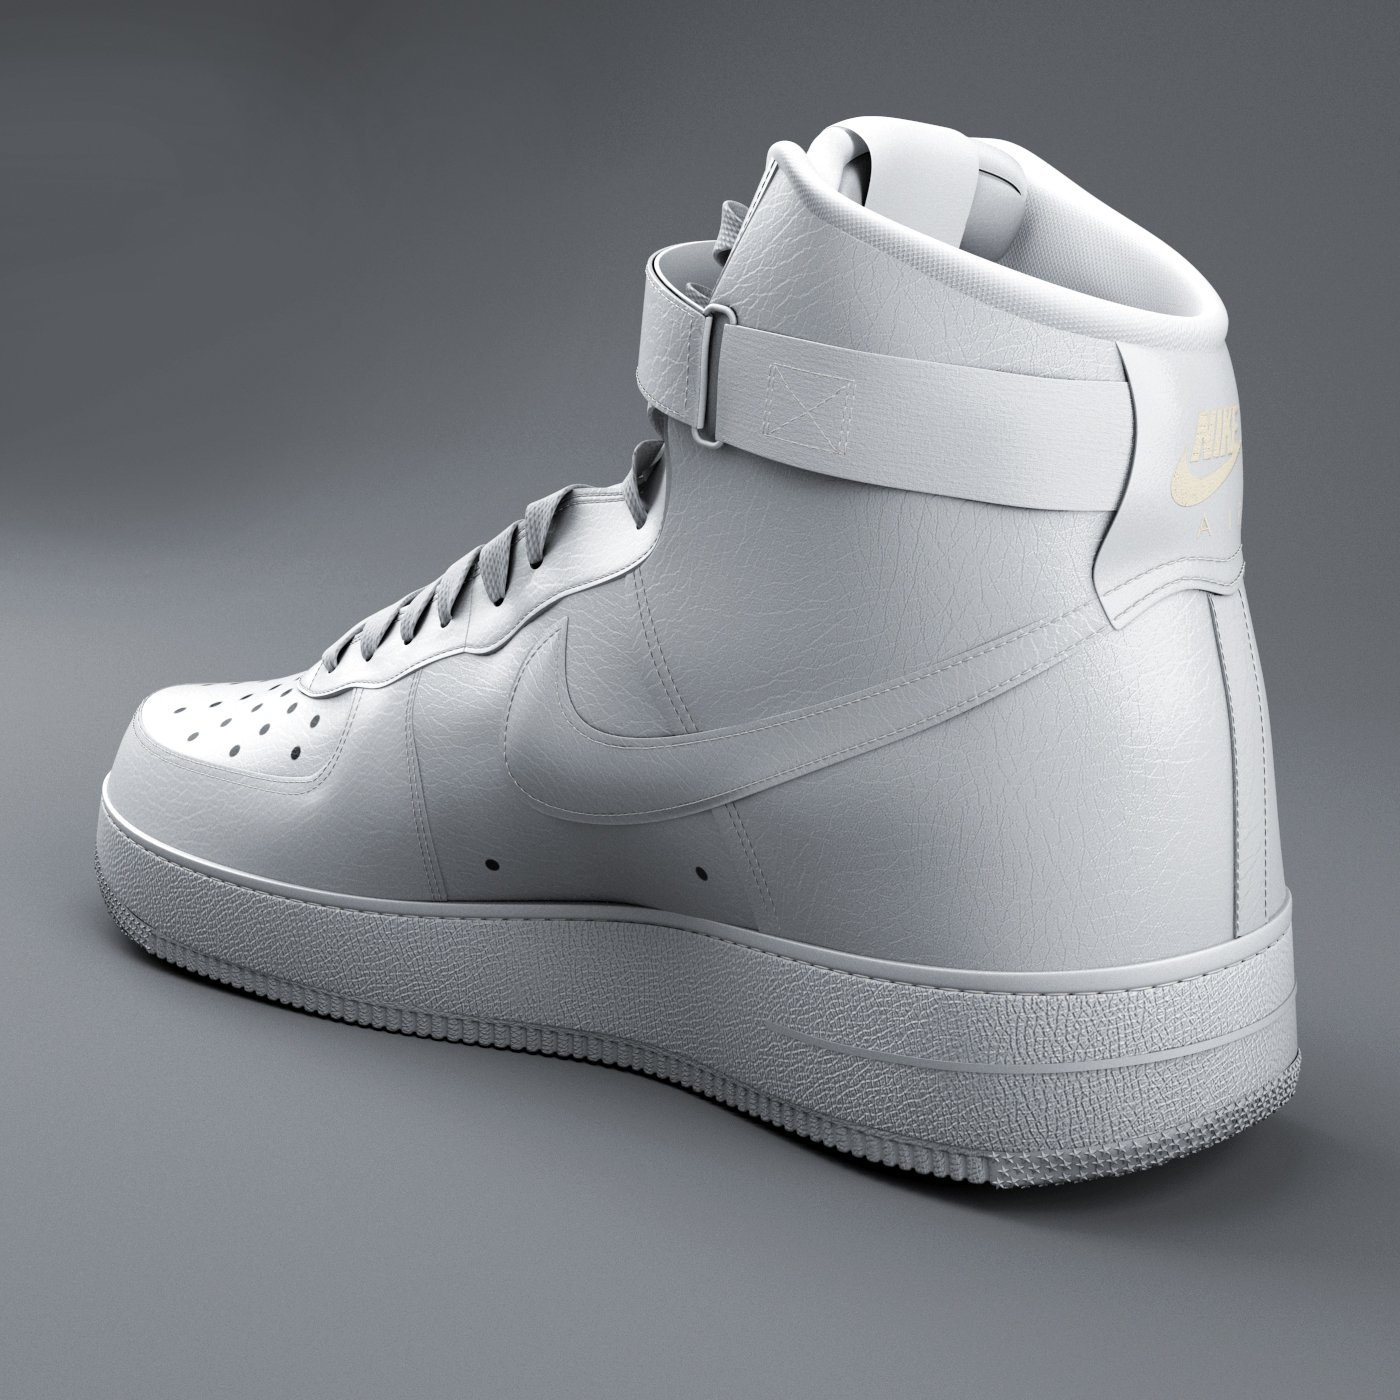 Nike Air Force 01 3D Model in Clothing 3DExport